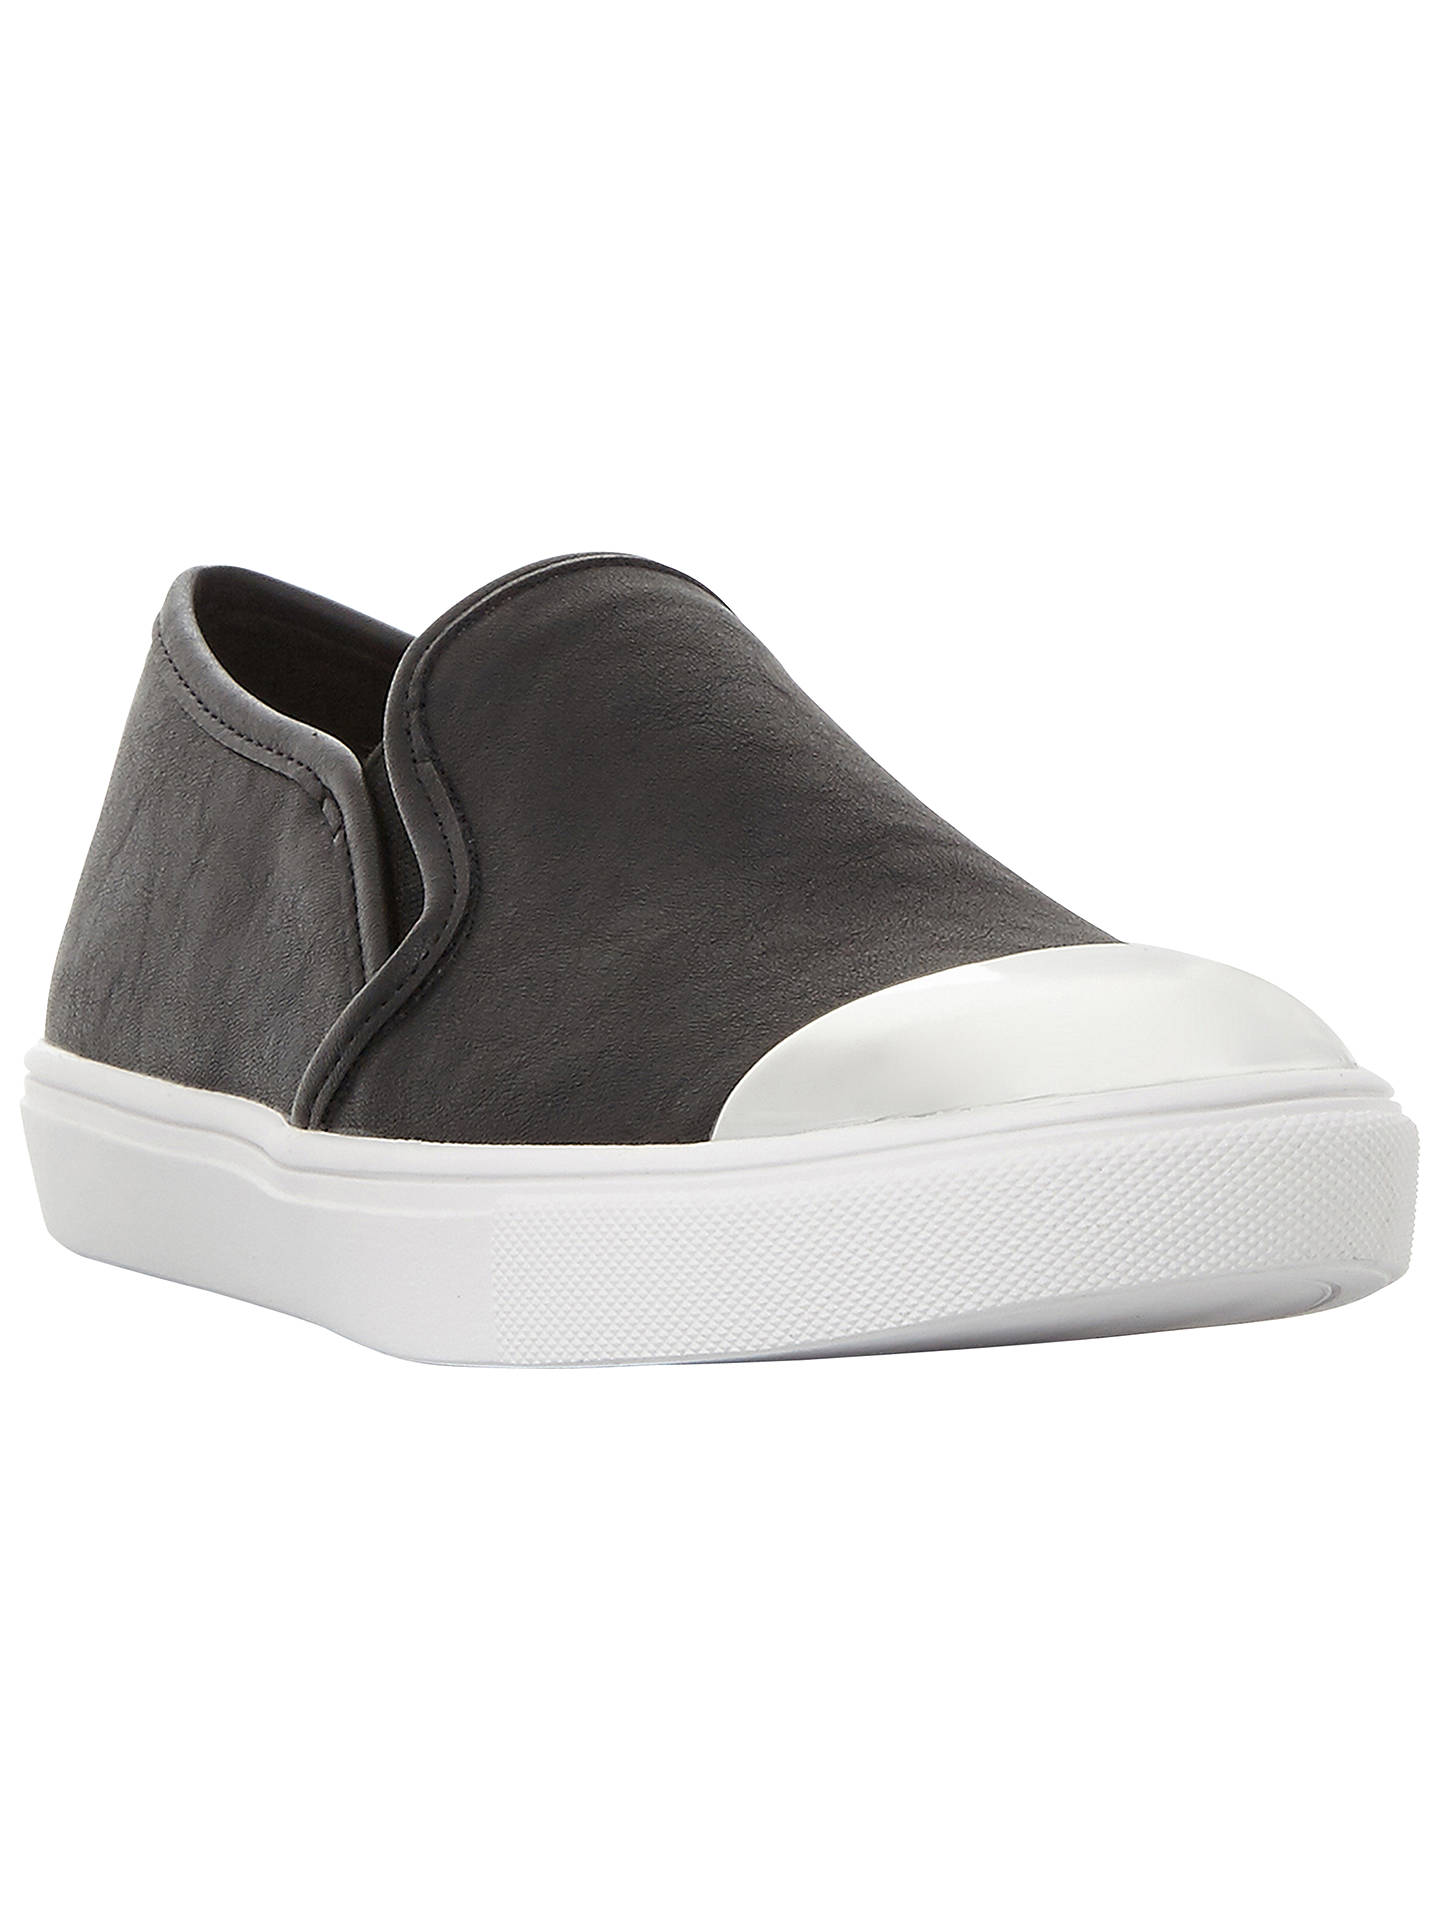 84376ef879d2 Steve Madden Eleete Slip On Trainers at John Lewis   Partners